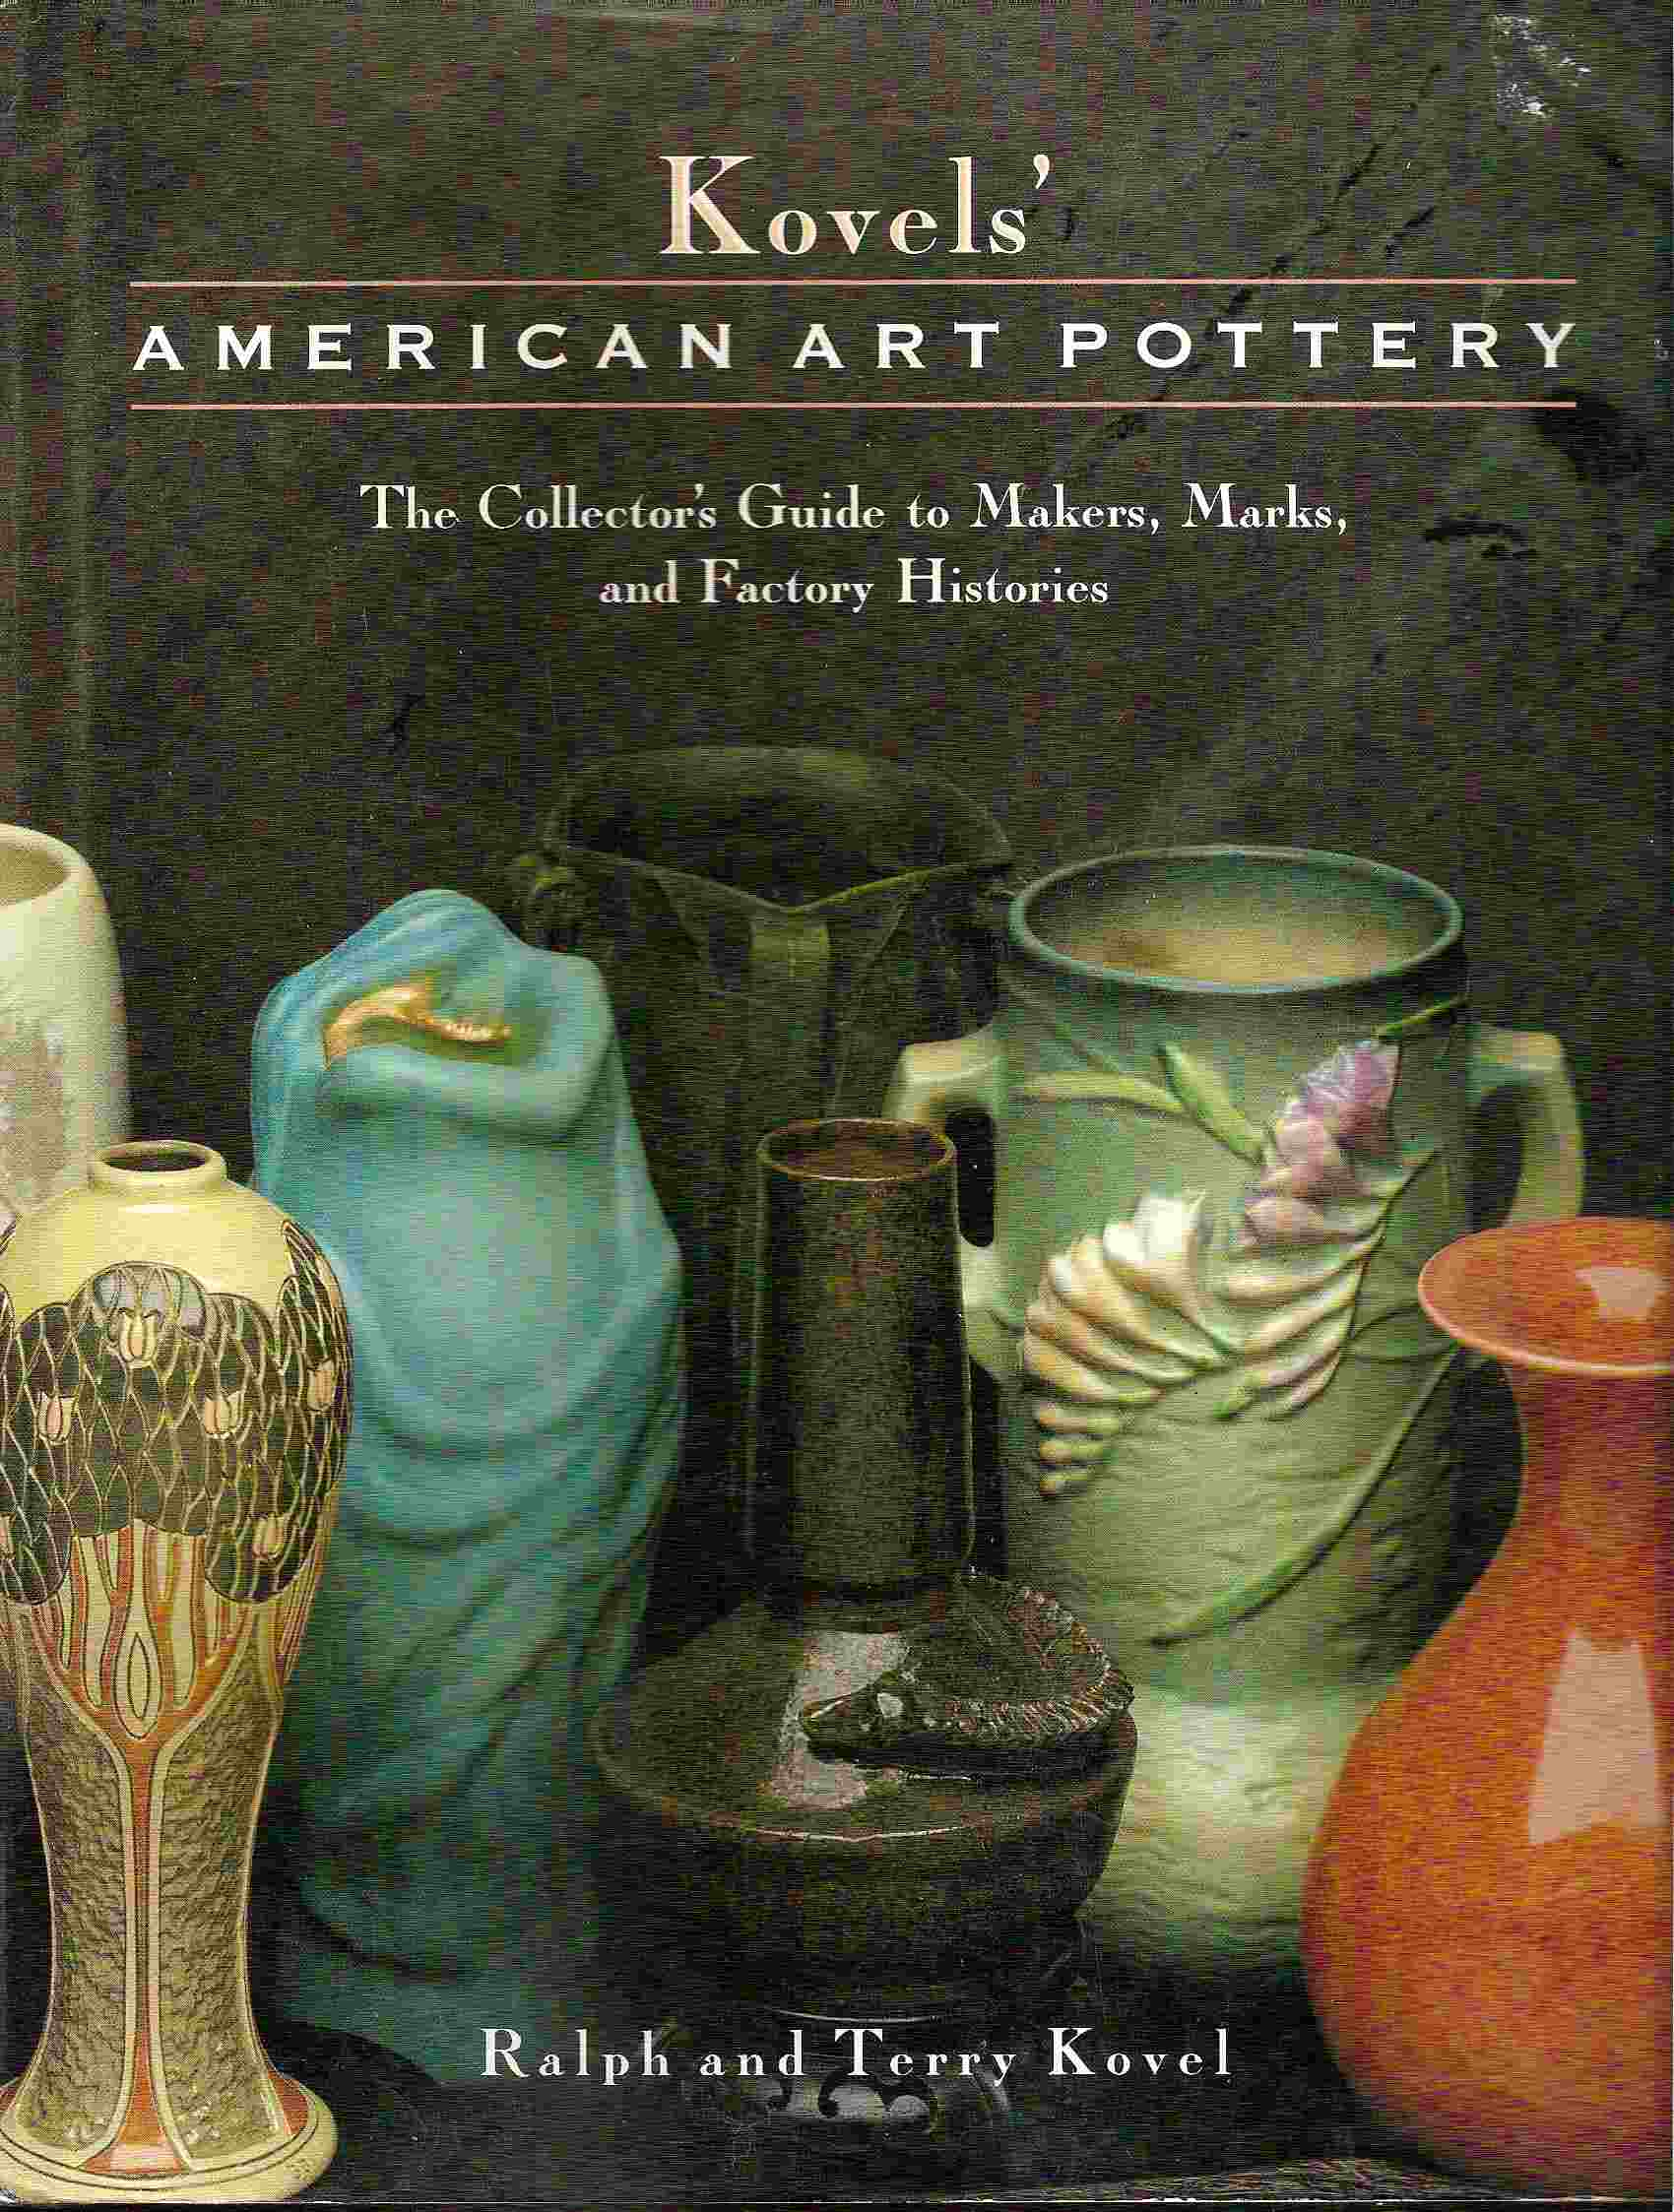 Image for The Collector's Guide to Makers, Marks, and Factory Histories; KOVELS' AMERICAN ART POTTERY